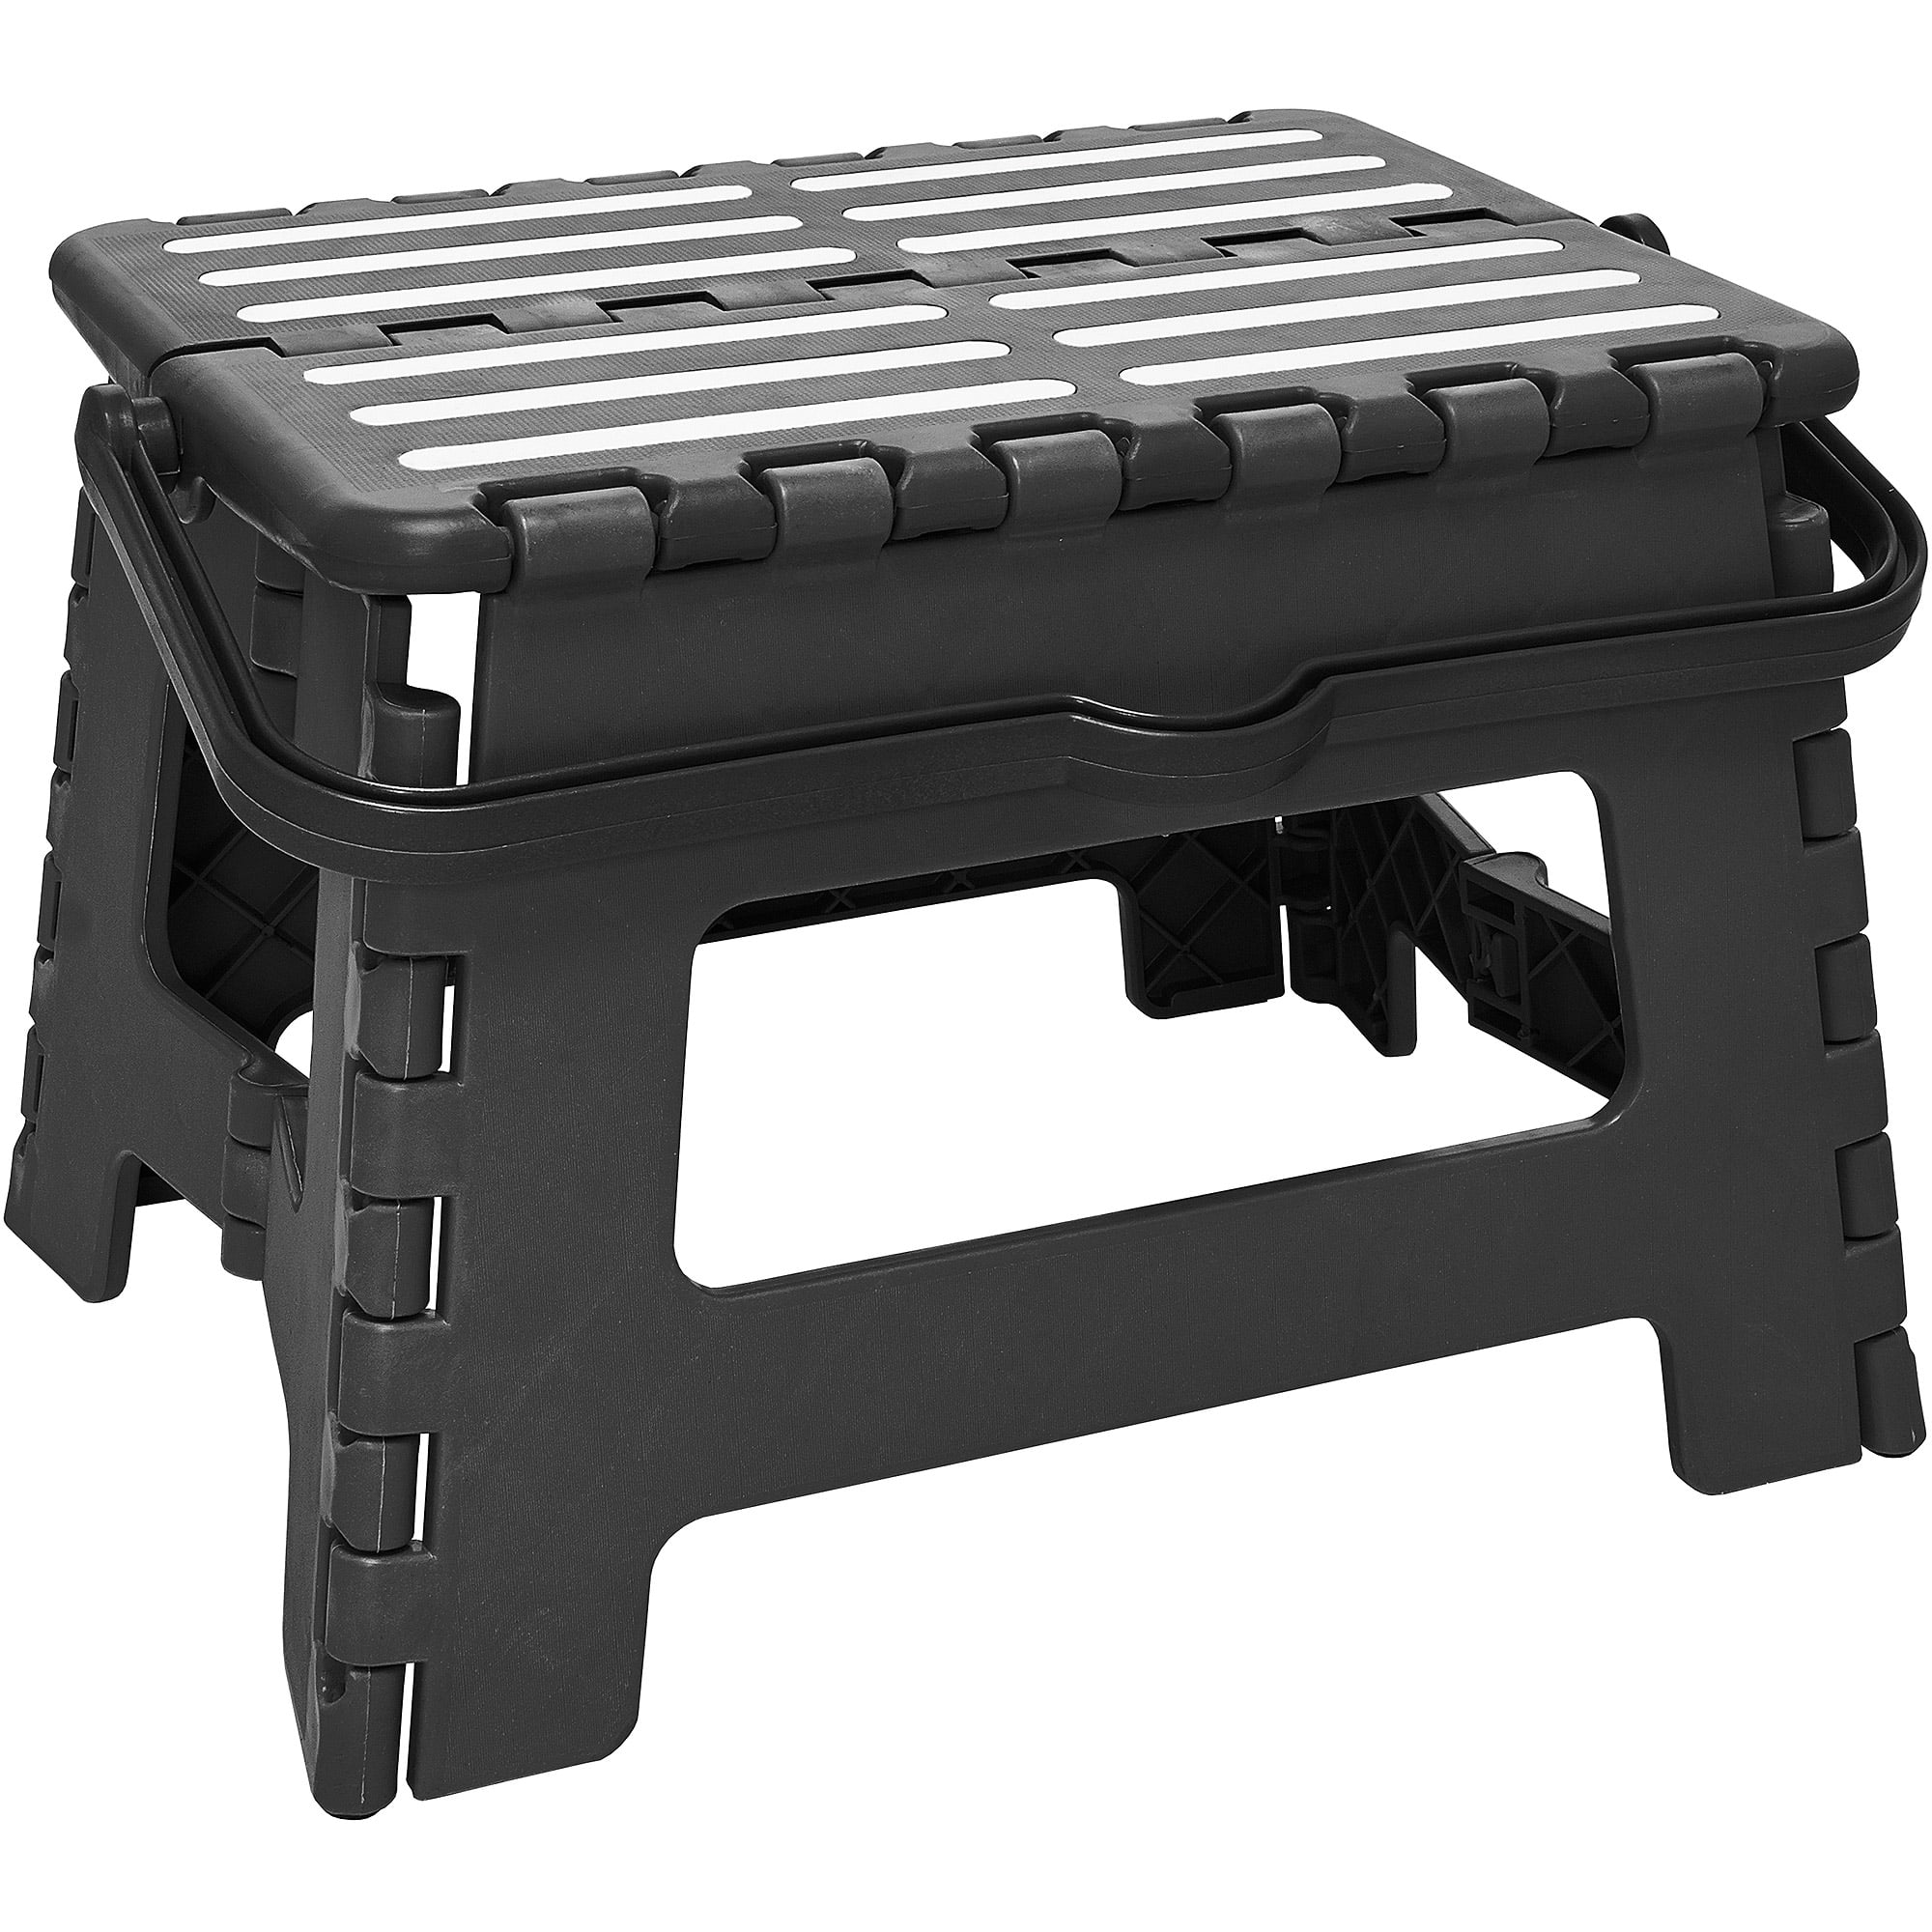 simplify striped folding step stool with handle - Step Stool With Handle